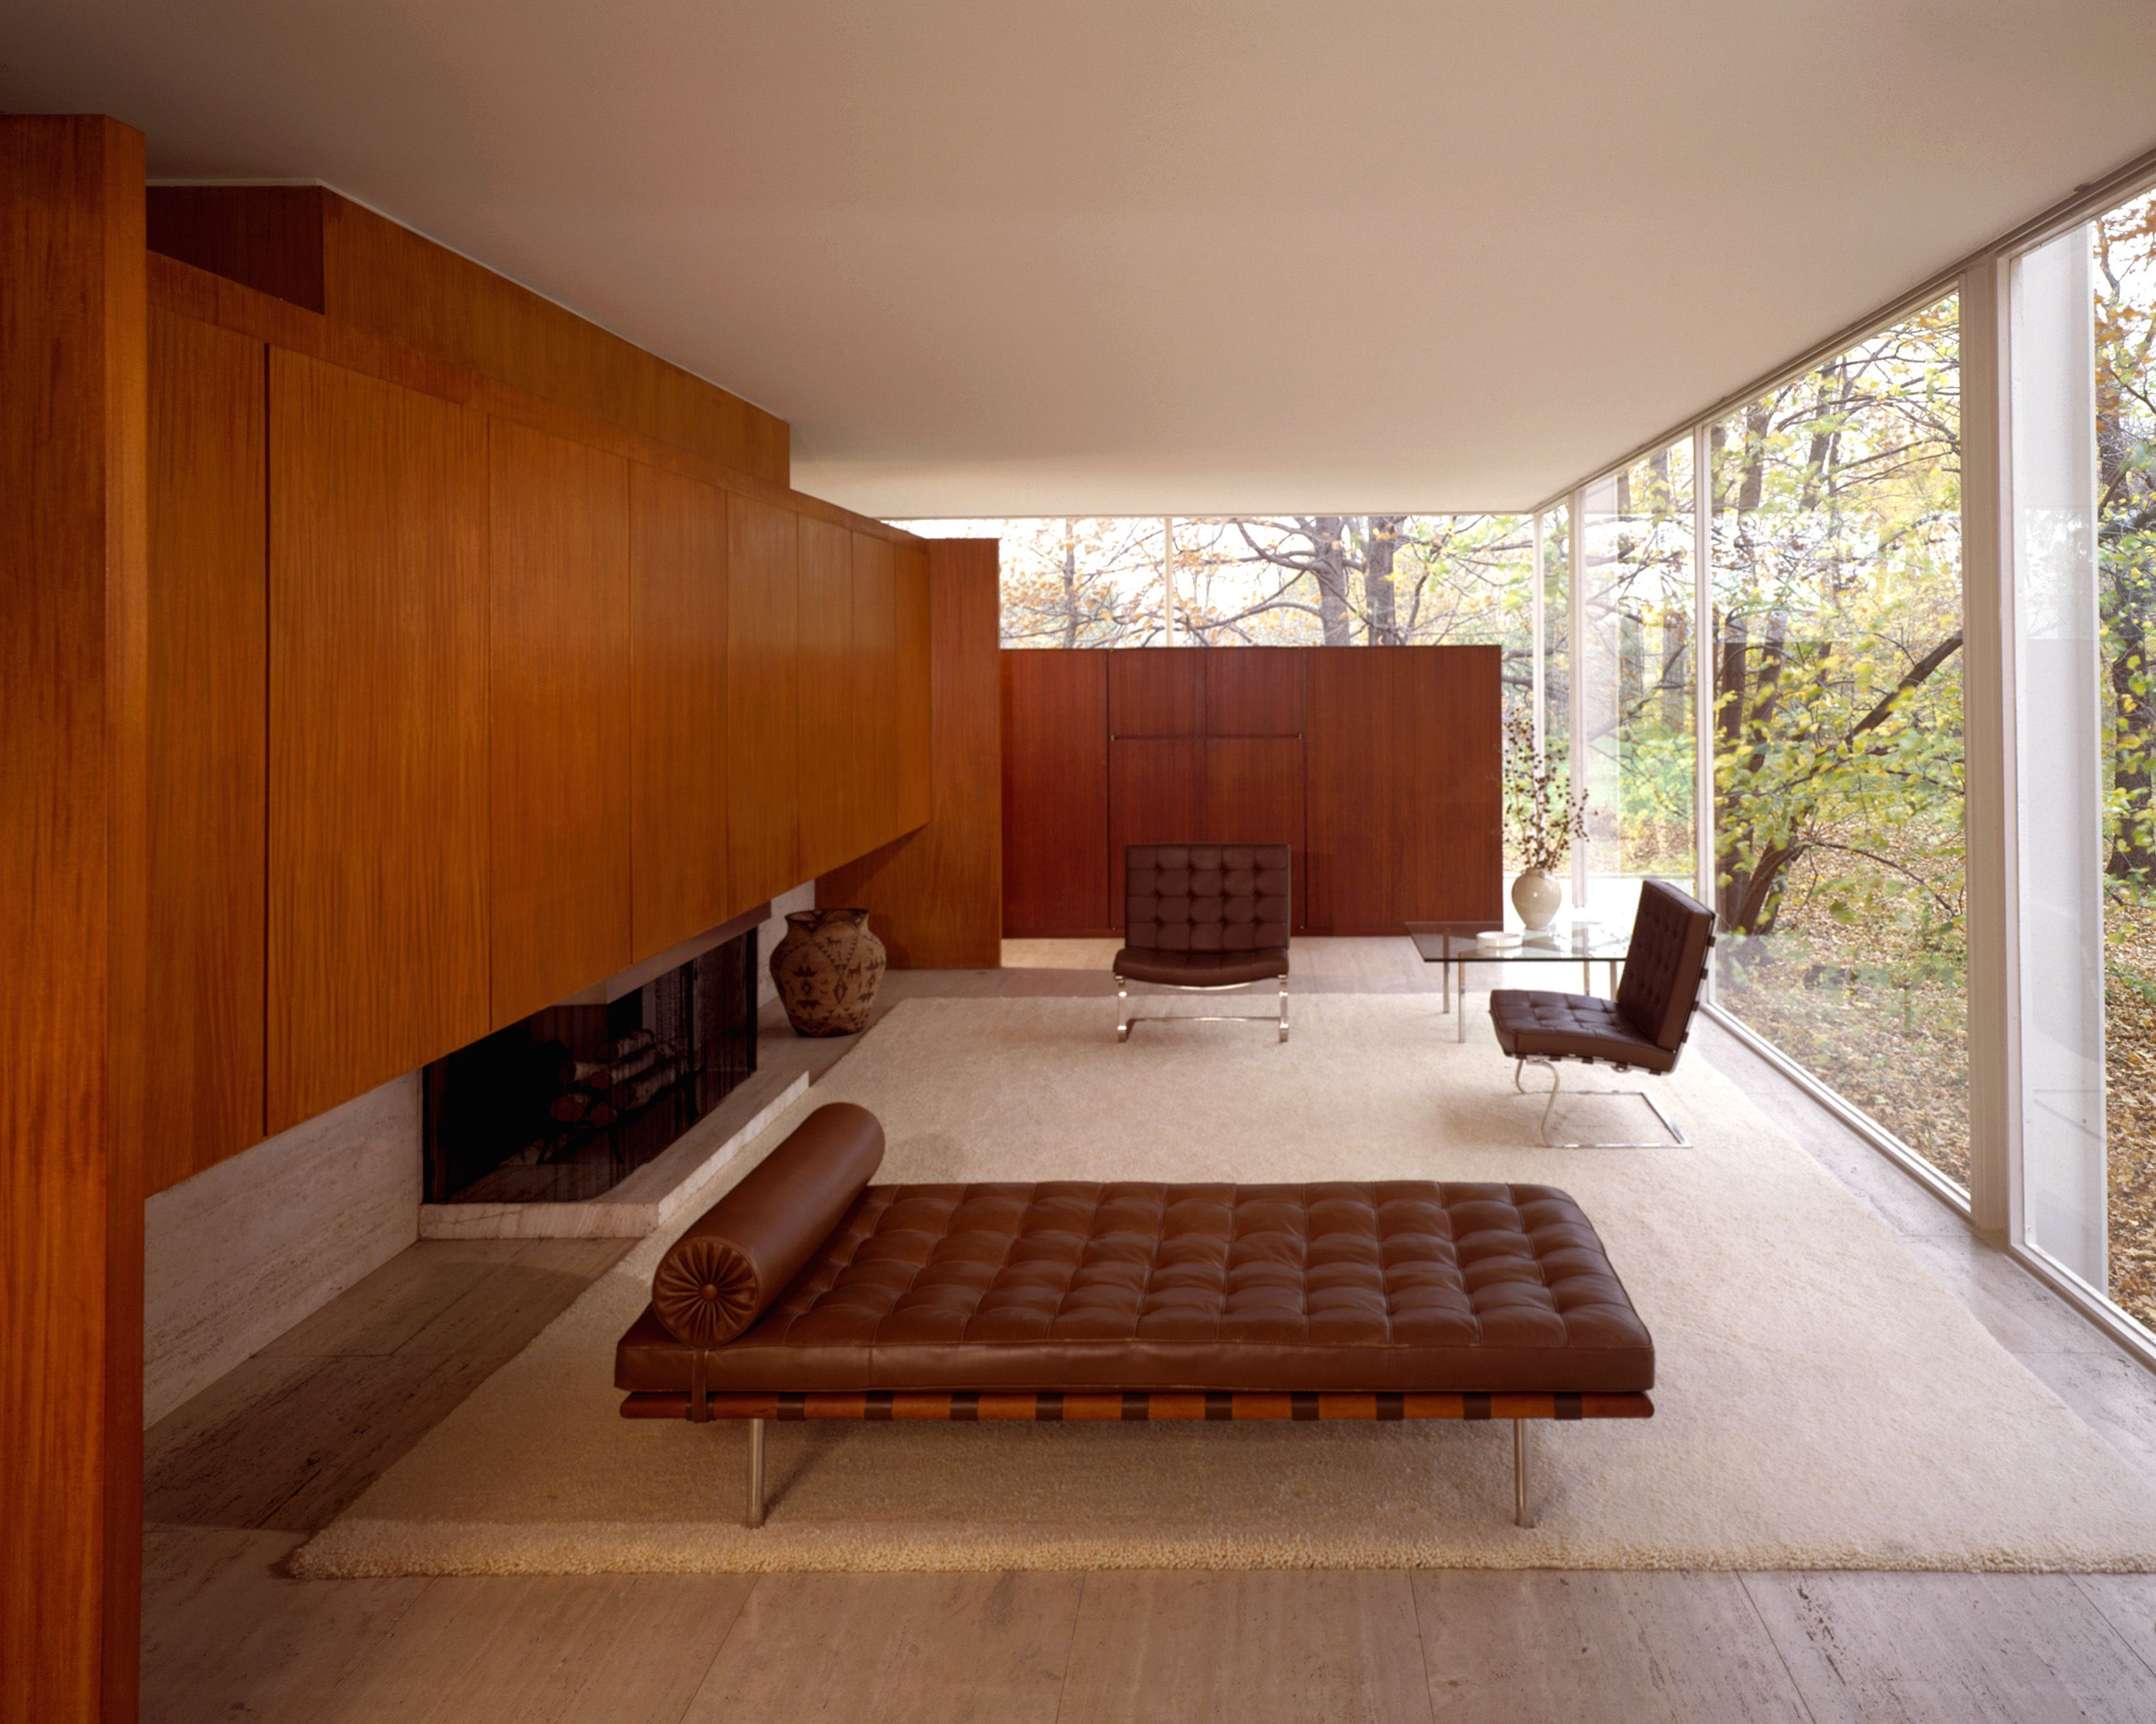 The farnsworth house interior illinois 1951 by ludwig mies van der rohe